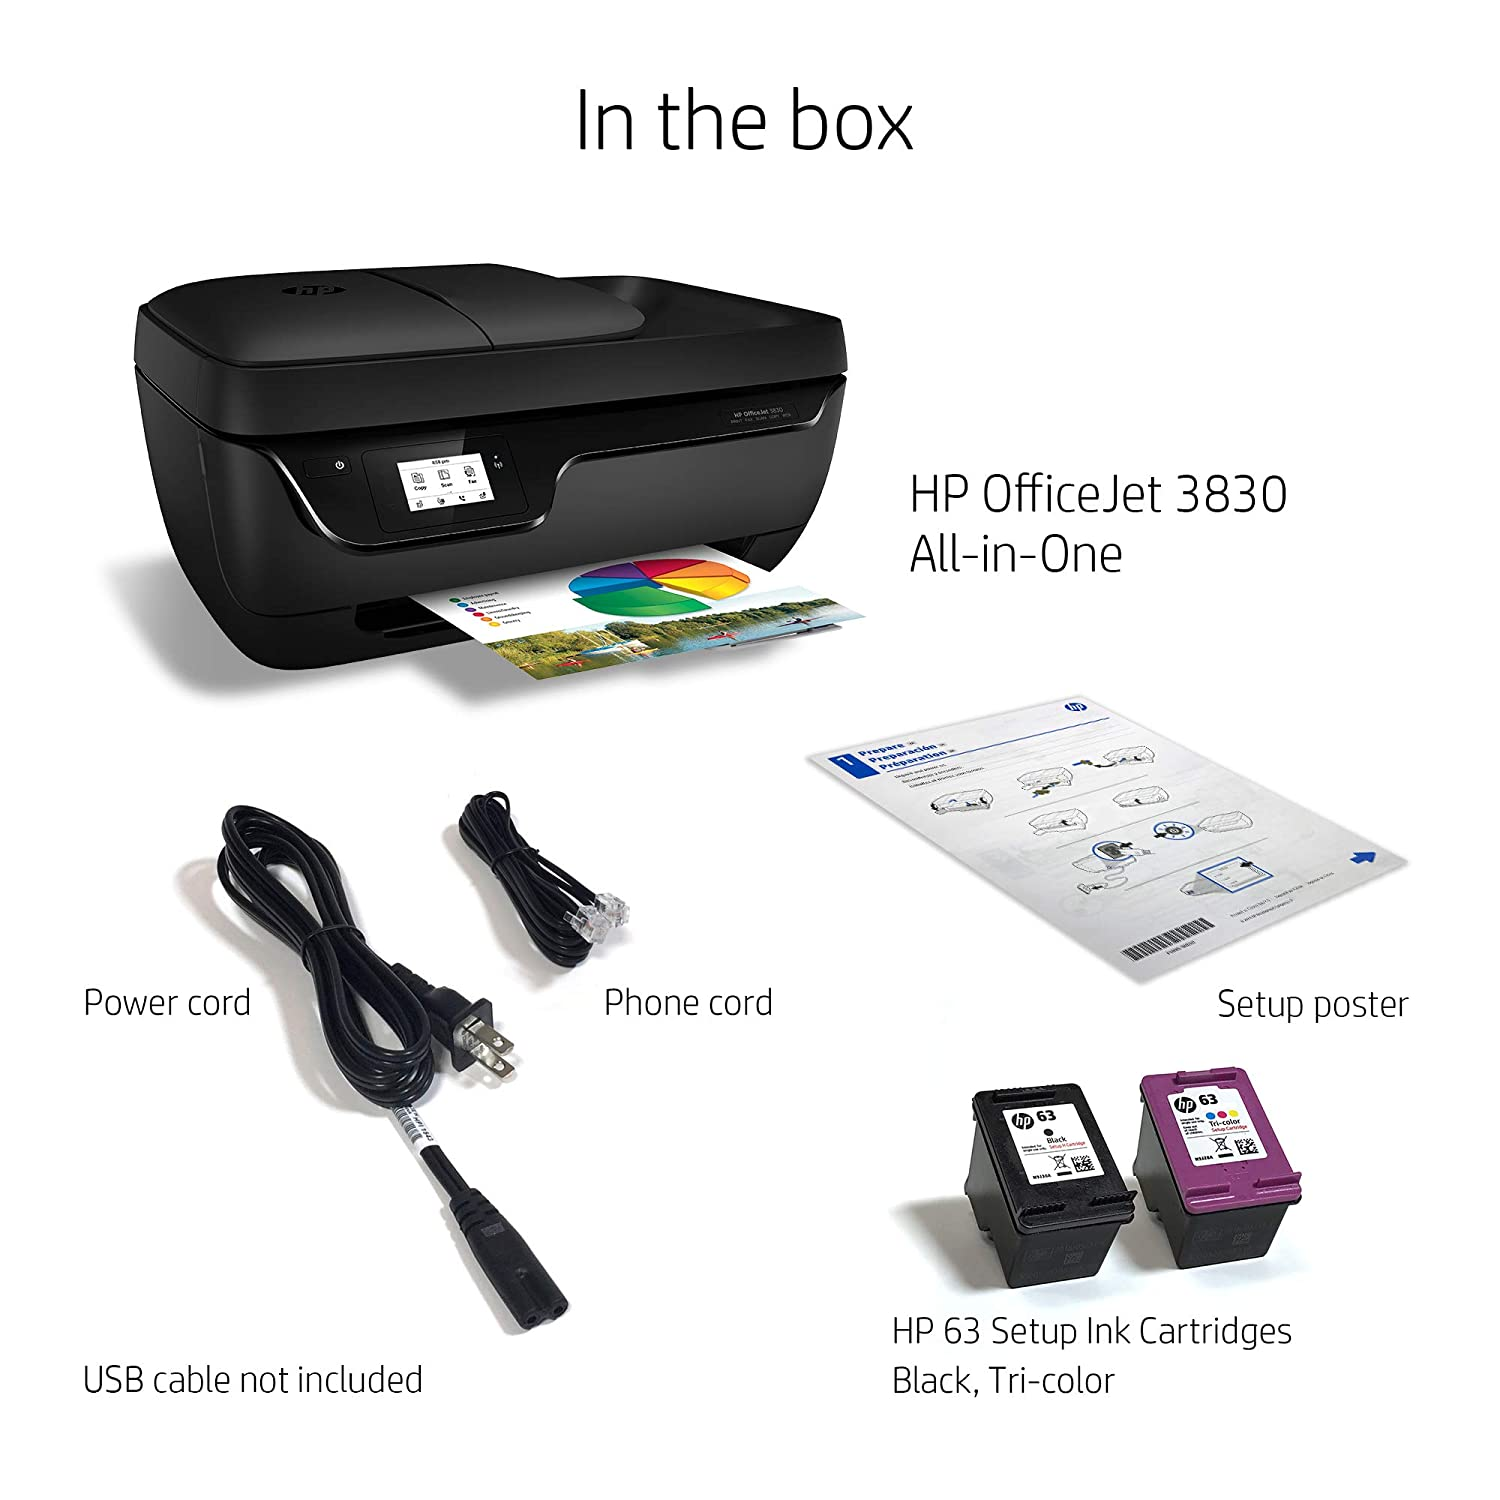 HP OFFICEJET 3830 ALL-IN-ONE PRINTER WINDOWS 8.1 DRIVERS DOWNLOAD